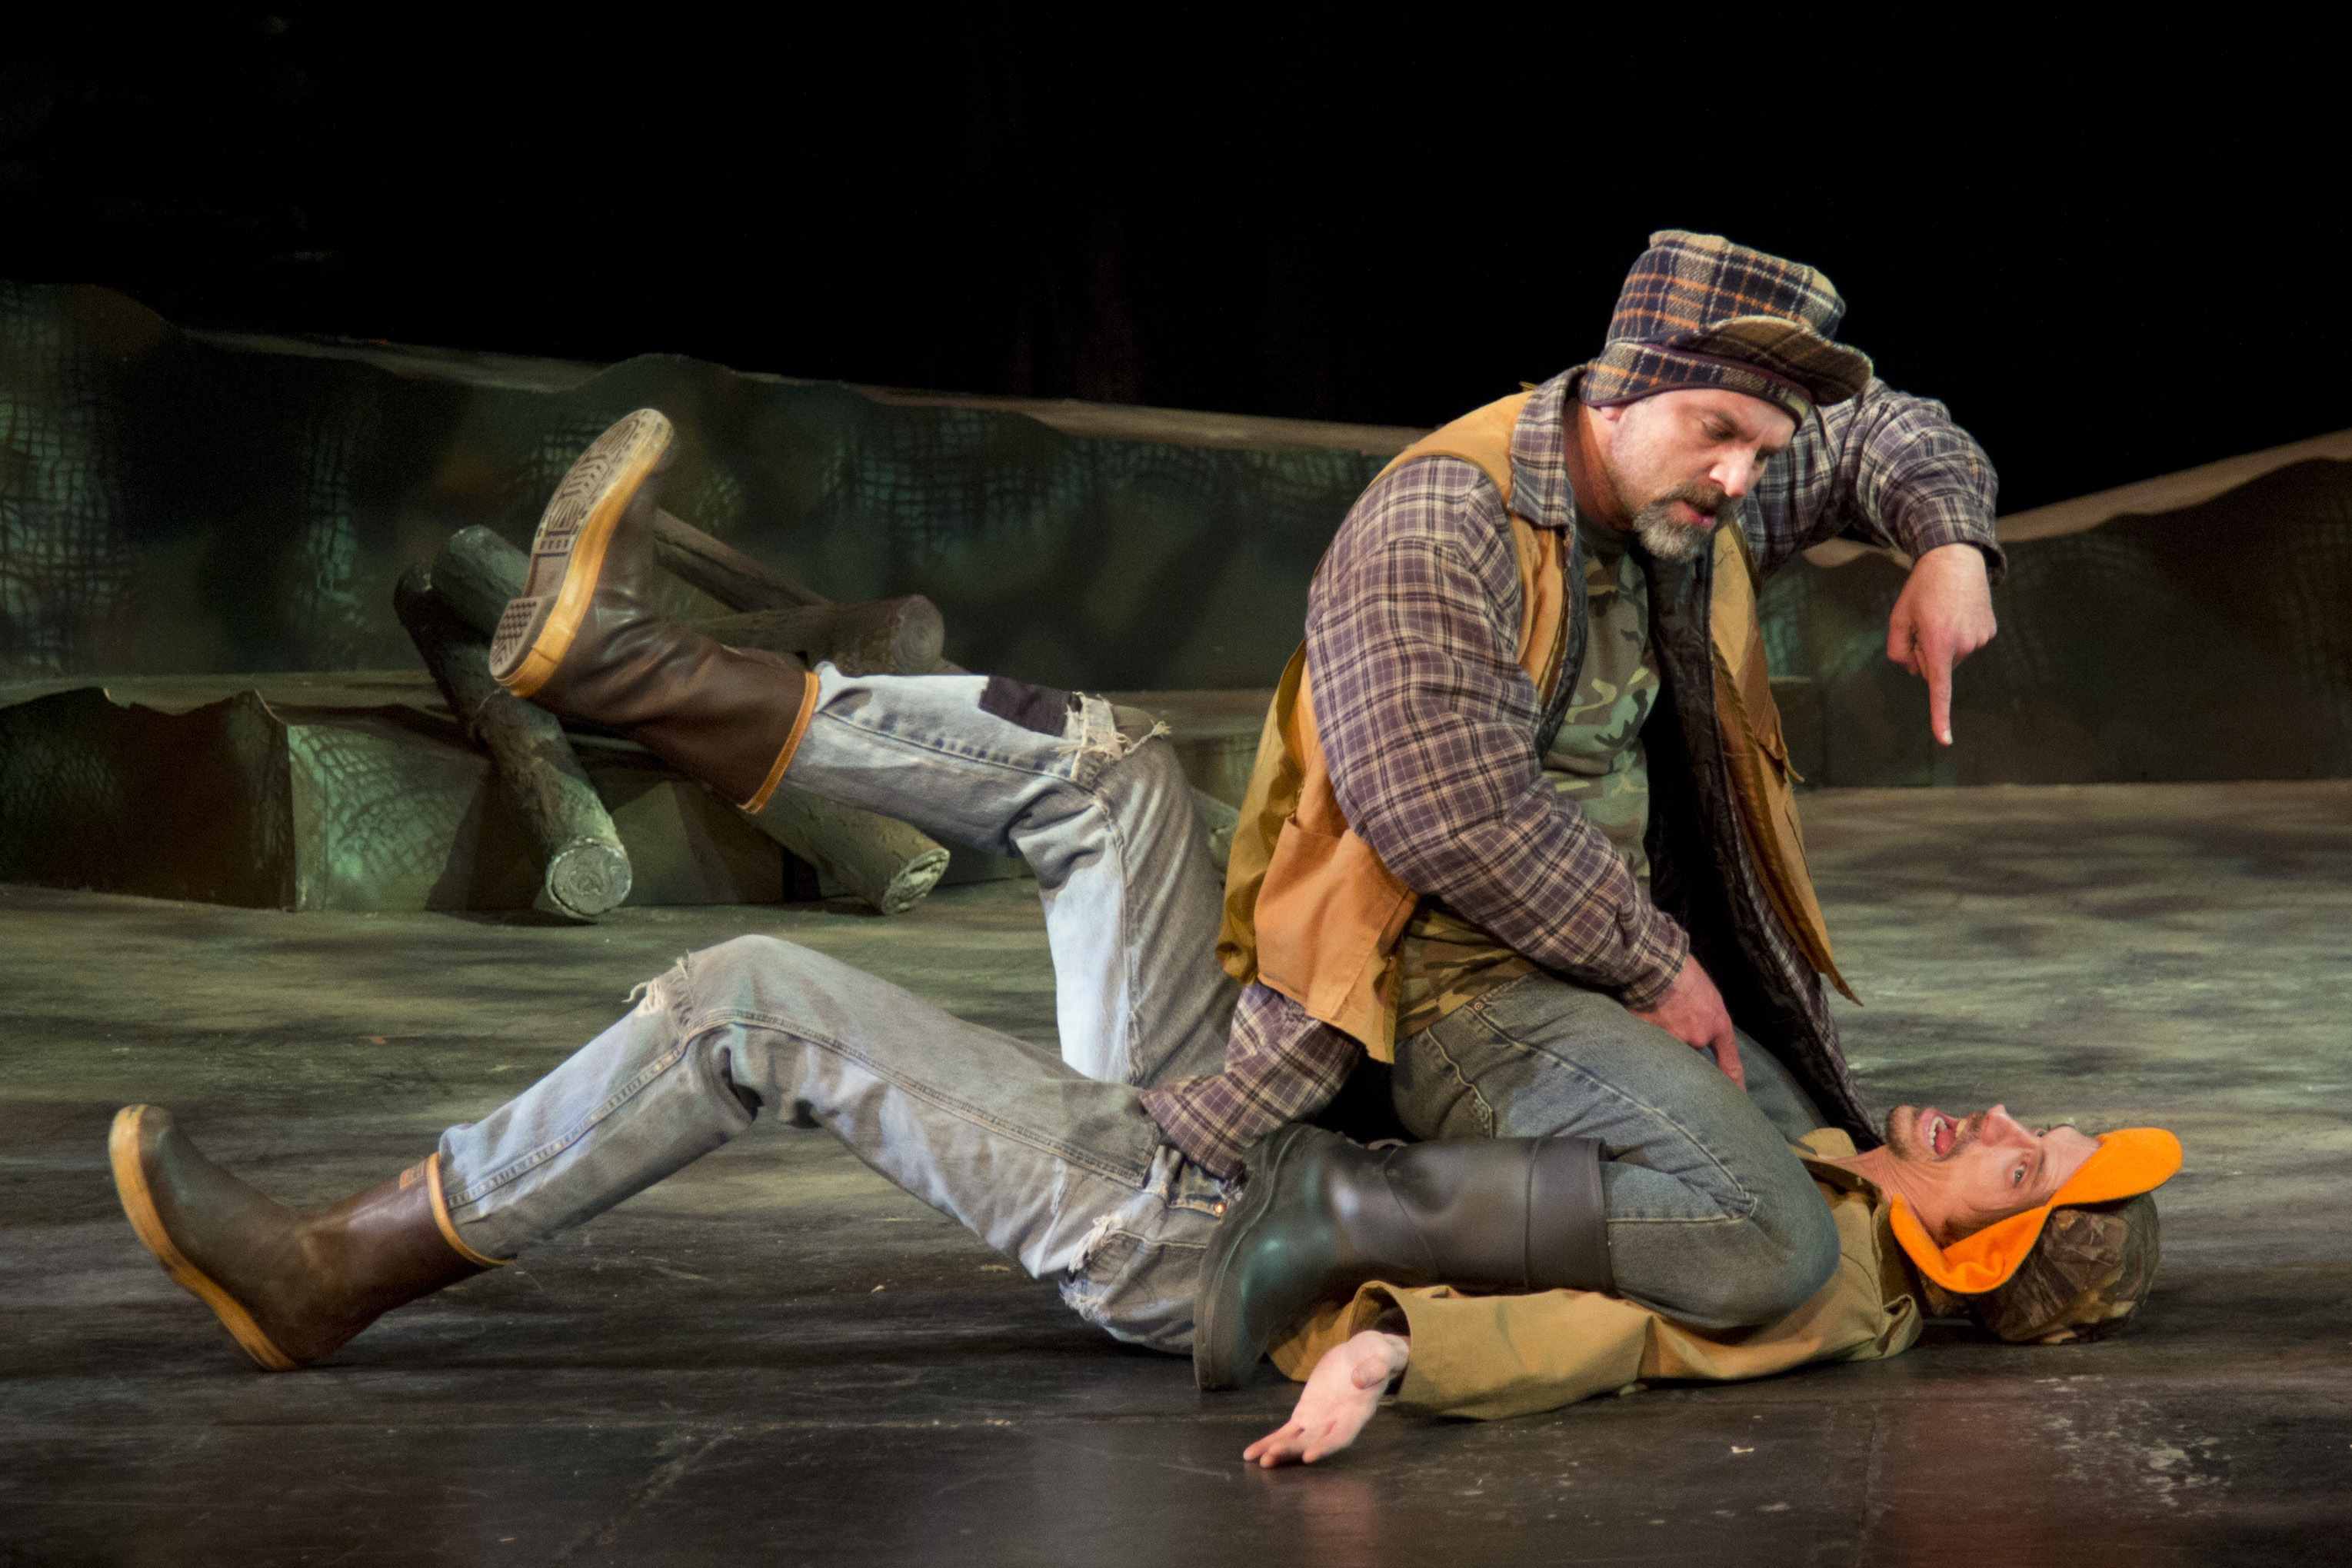 Duane and Duwell fight during Duck Hunter Shoots Angel - Spokane Civic Theatre